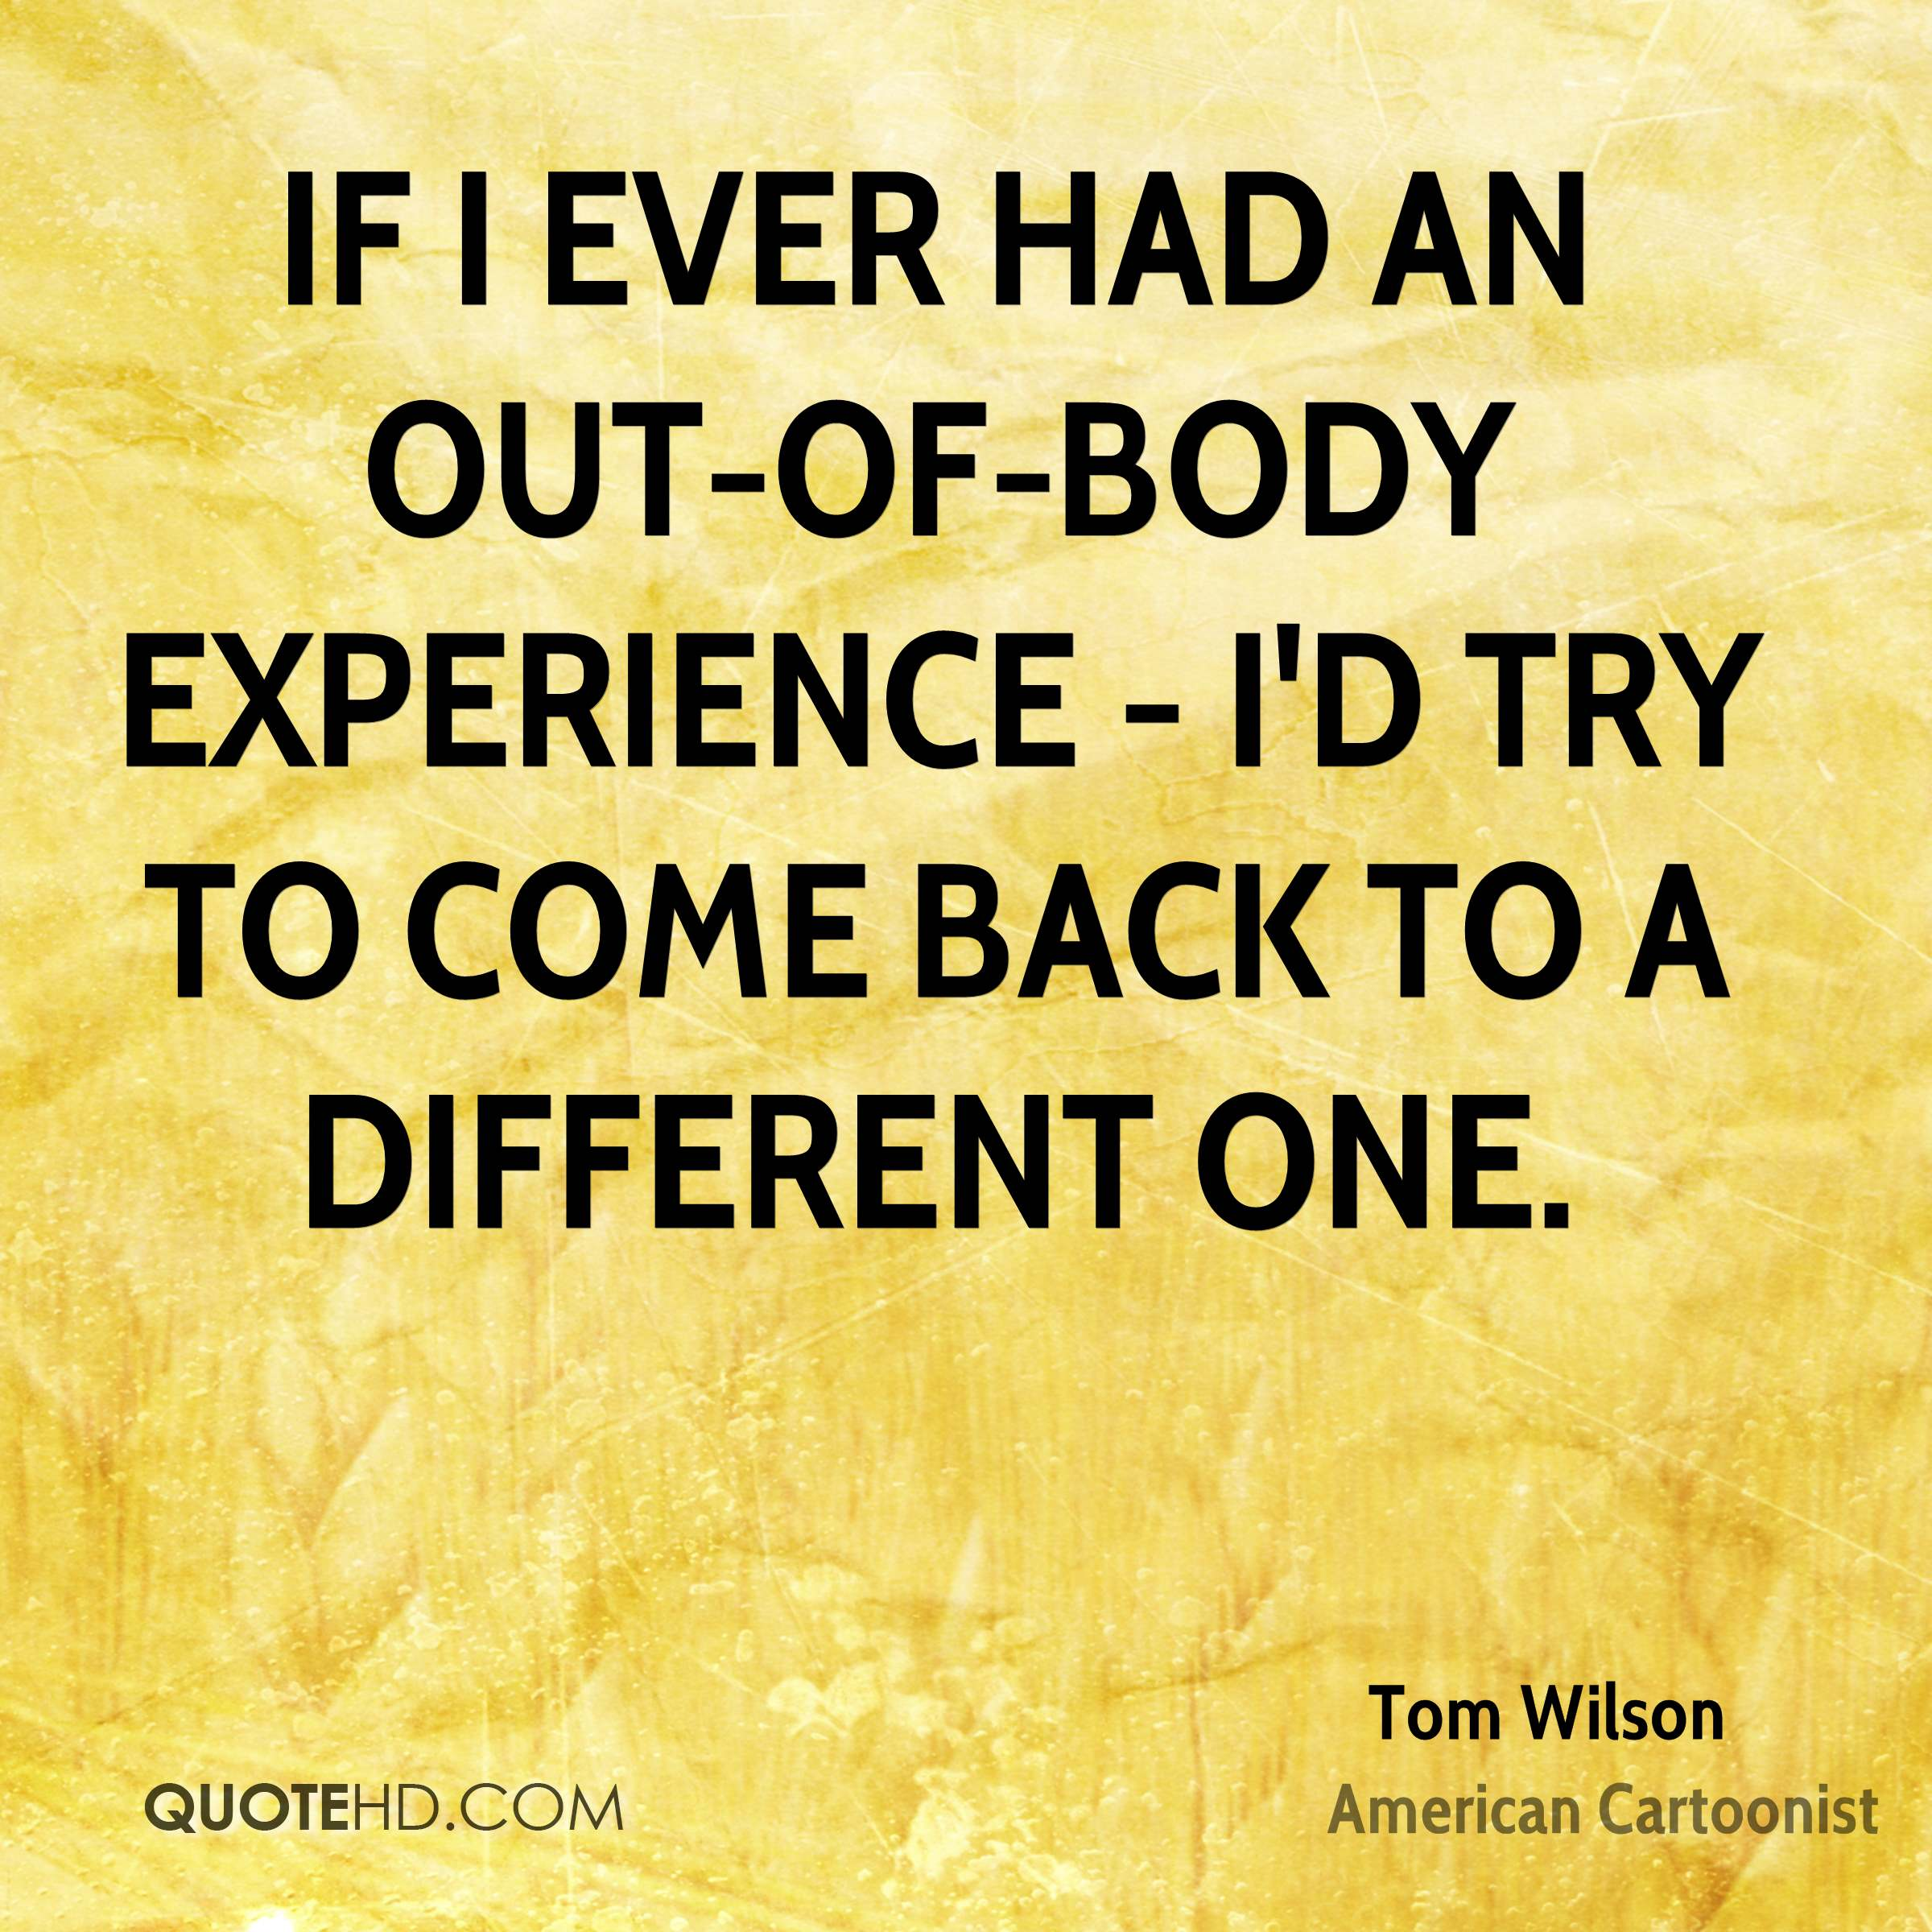 If I ever had an out-of-body experience - I'd try to come back to a different one.